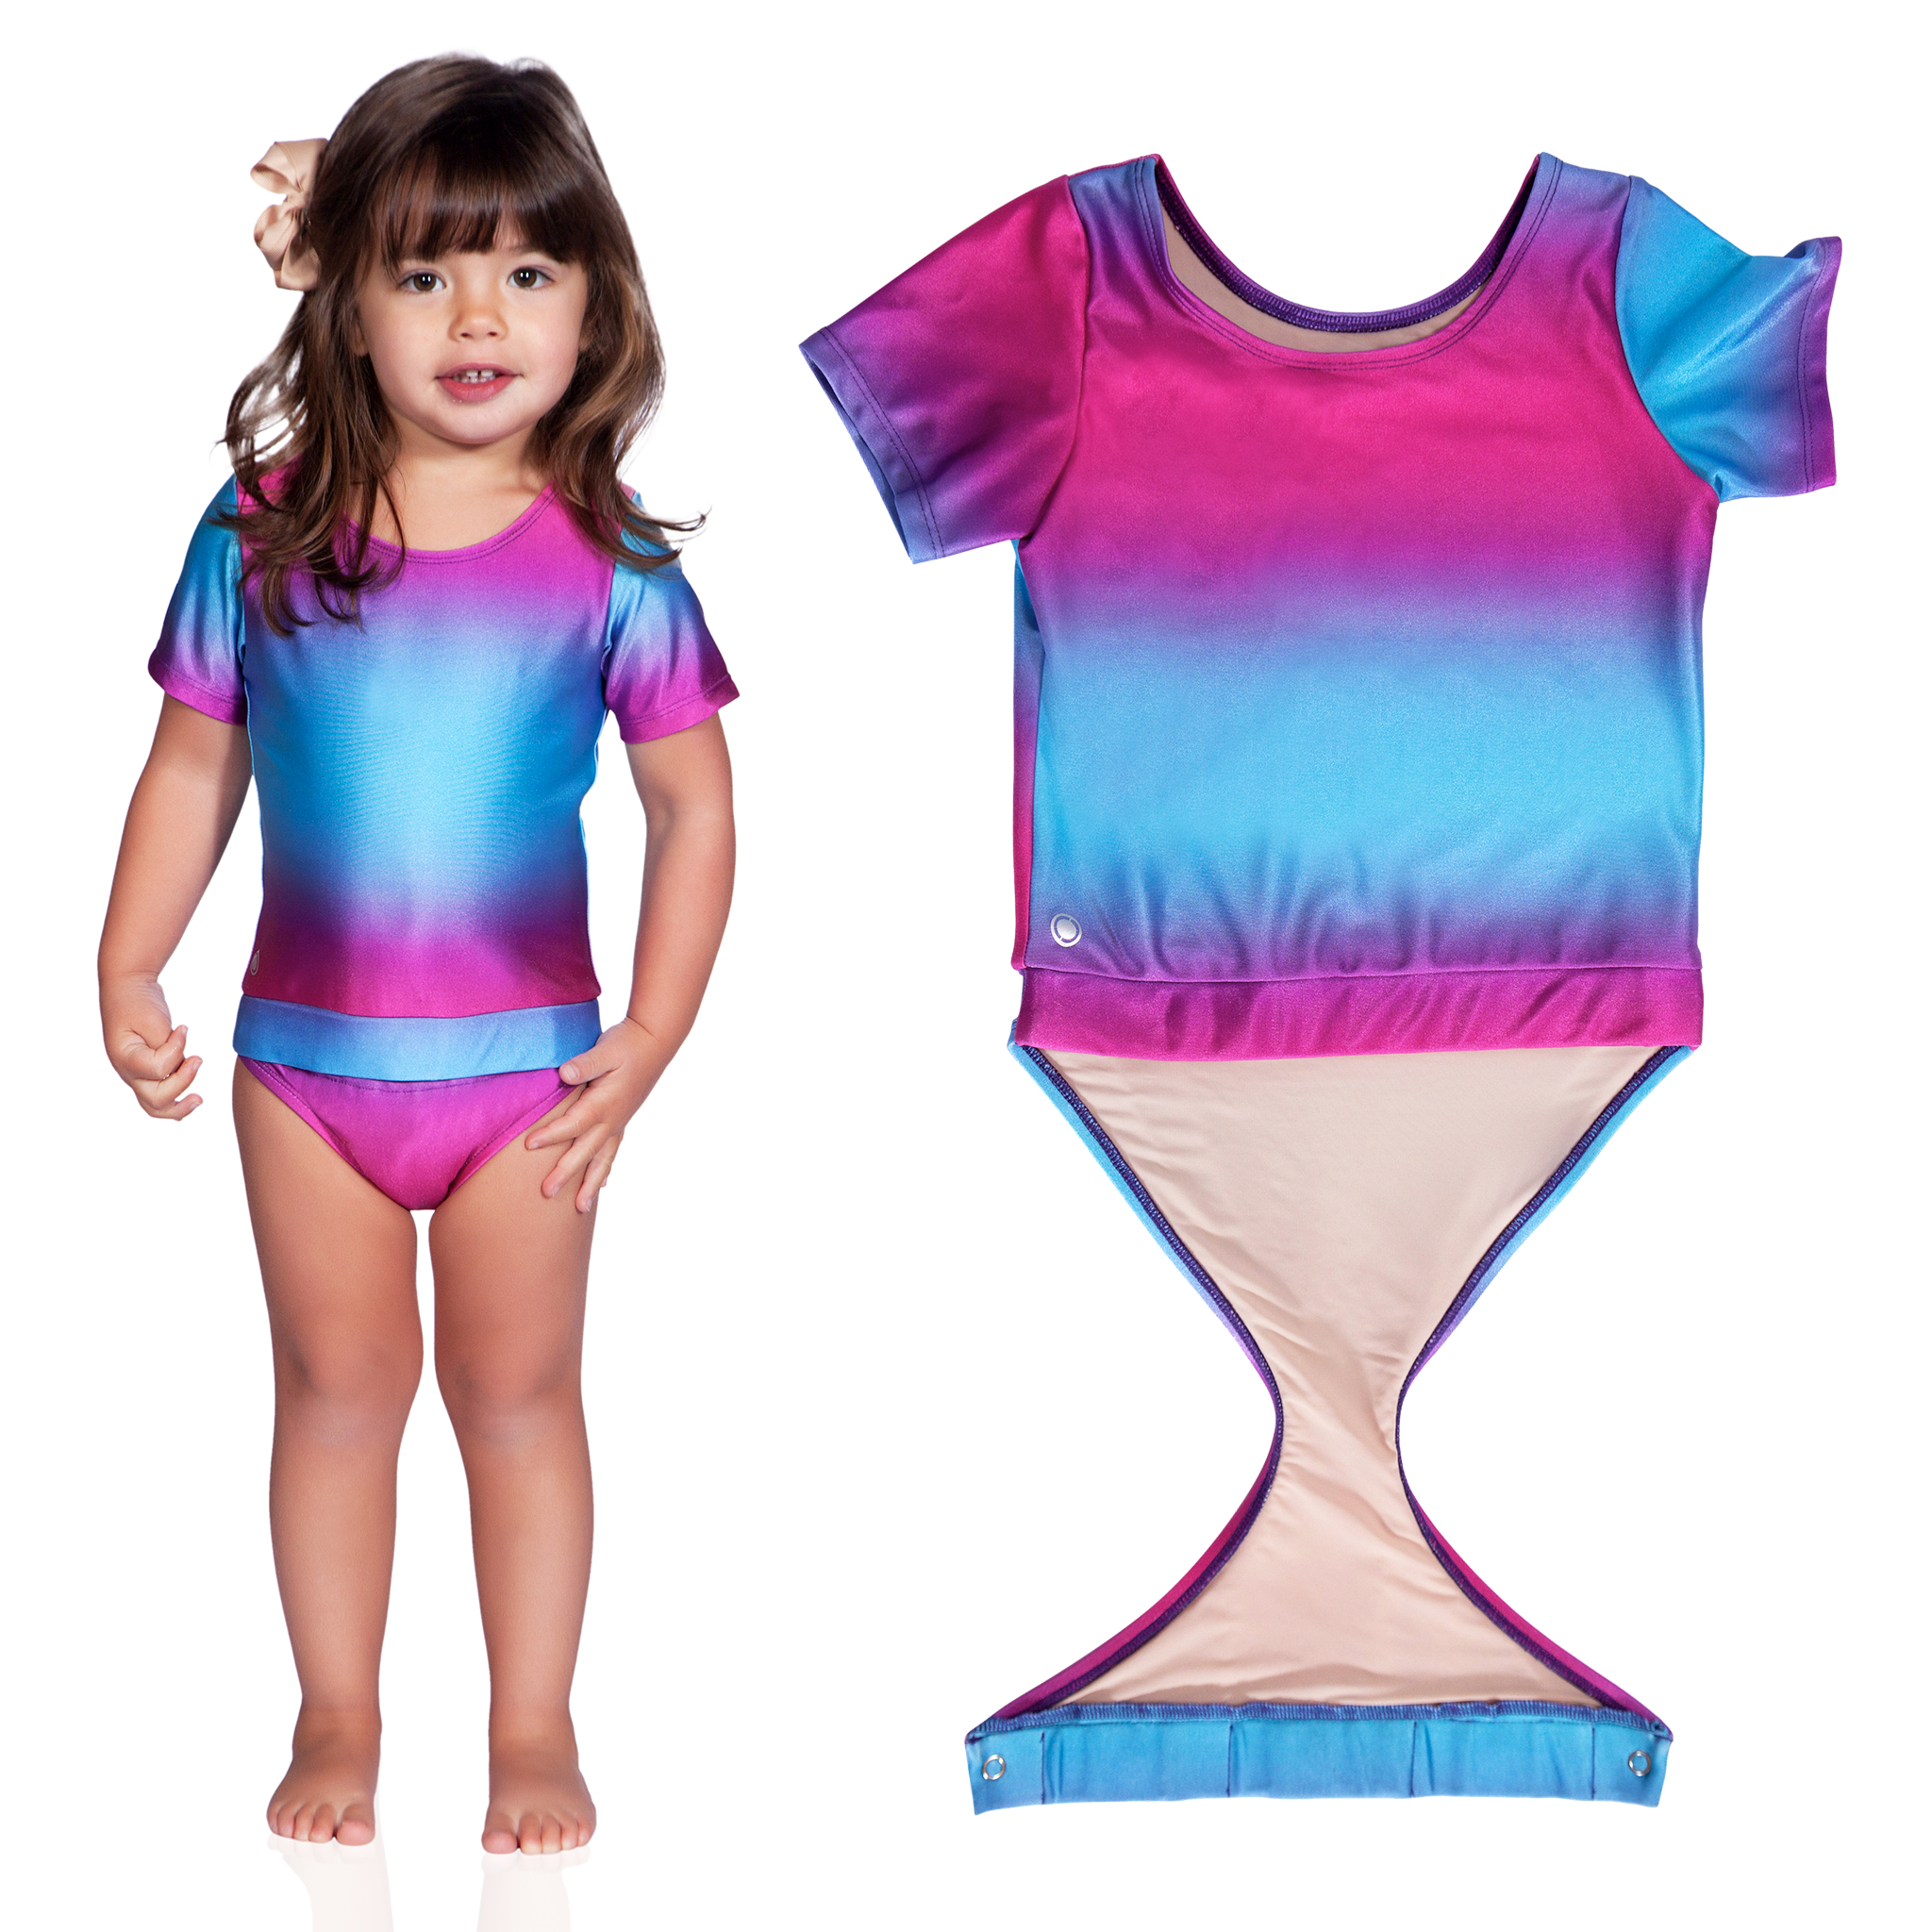 f08af8702468a Fits toddler girls · Fuchsia Turquoise Ombre short sleeve swimsuit by  FASTEN. Rash guard swimsuit.